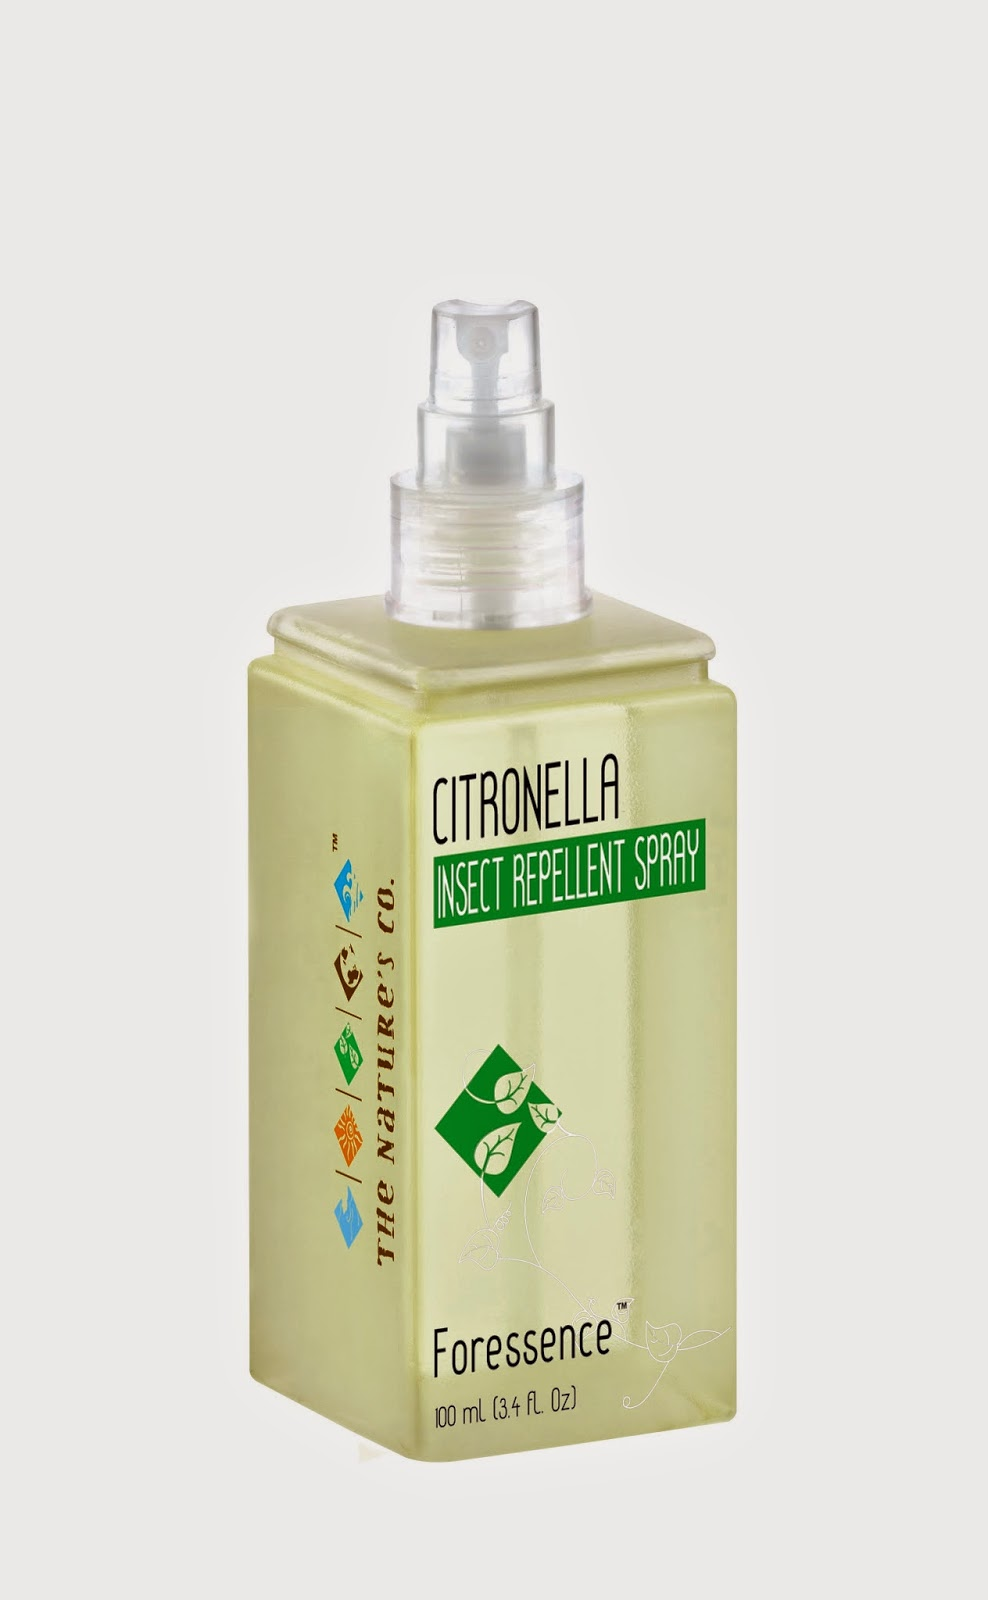 The Nature's Co. Citronella Insect Repellent Spray